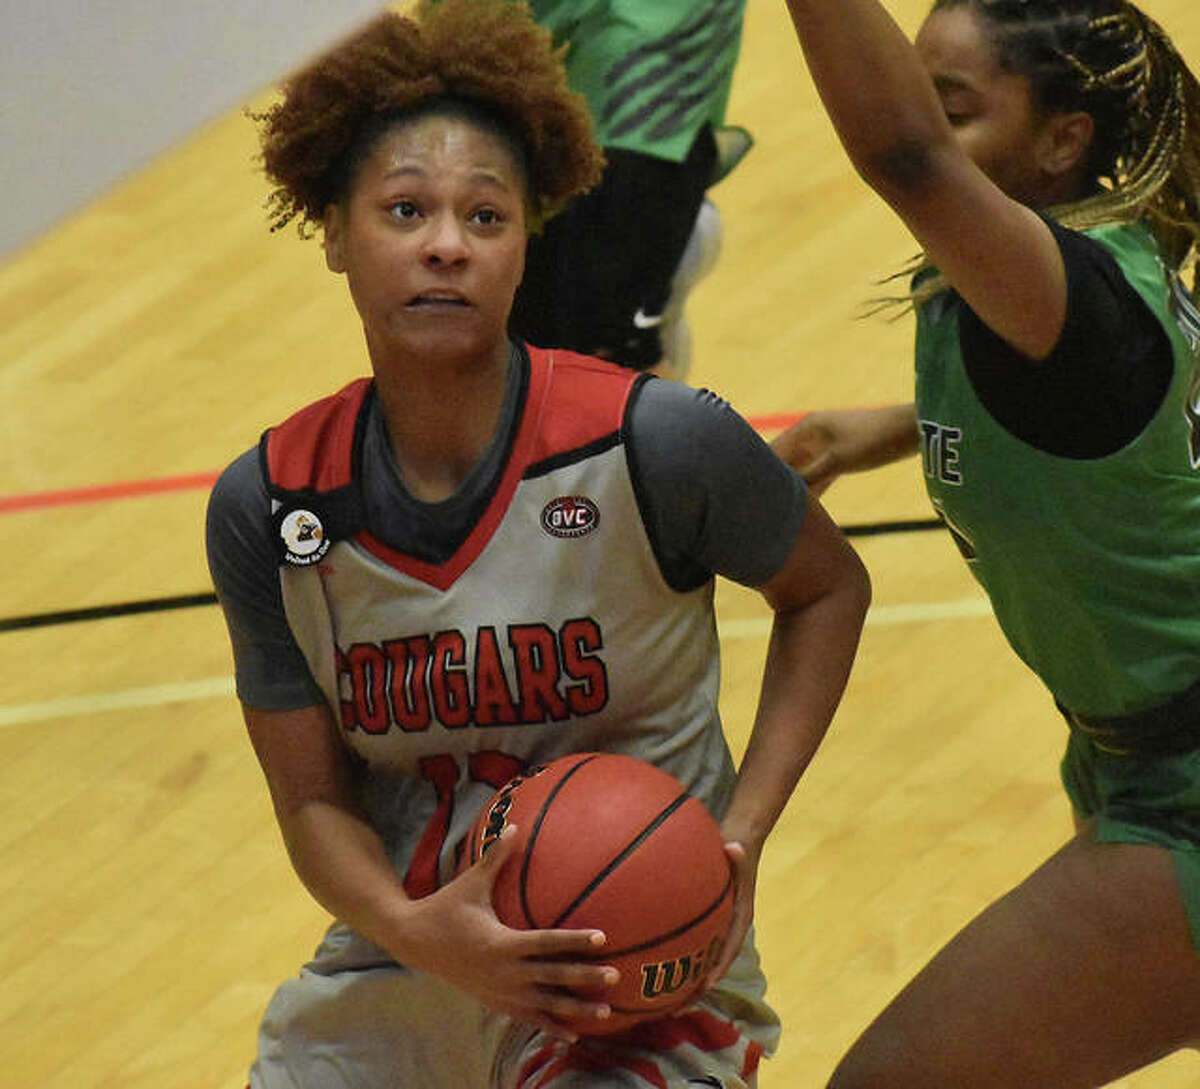 SIUE sophomore forward Mikayla Kinnard drives to the basket in the first quarter against Chicago State on Monday.